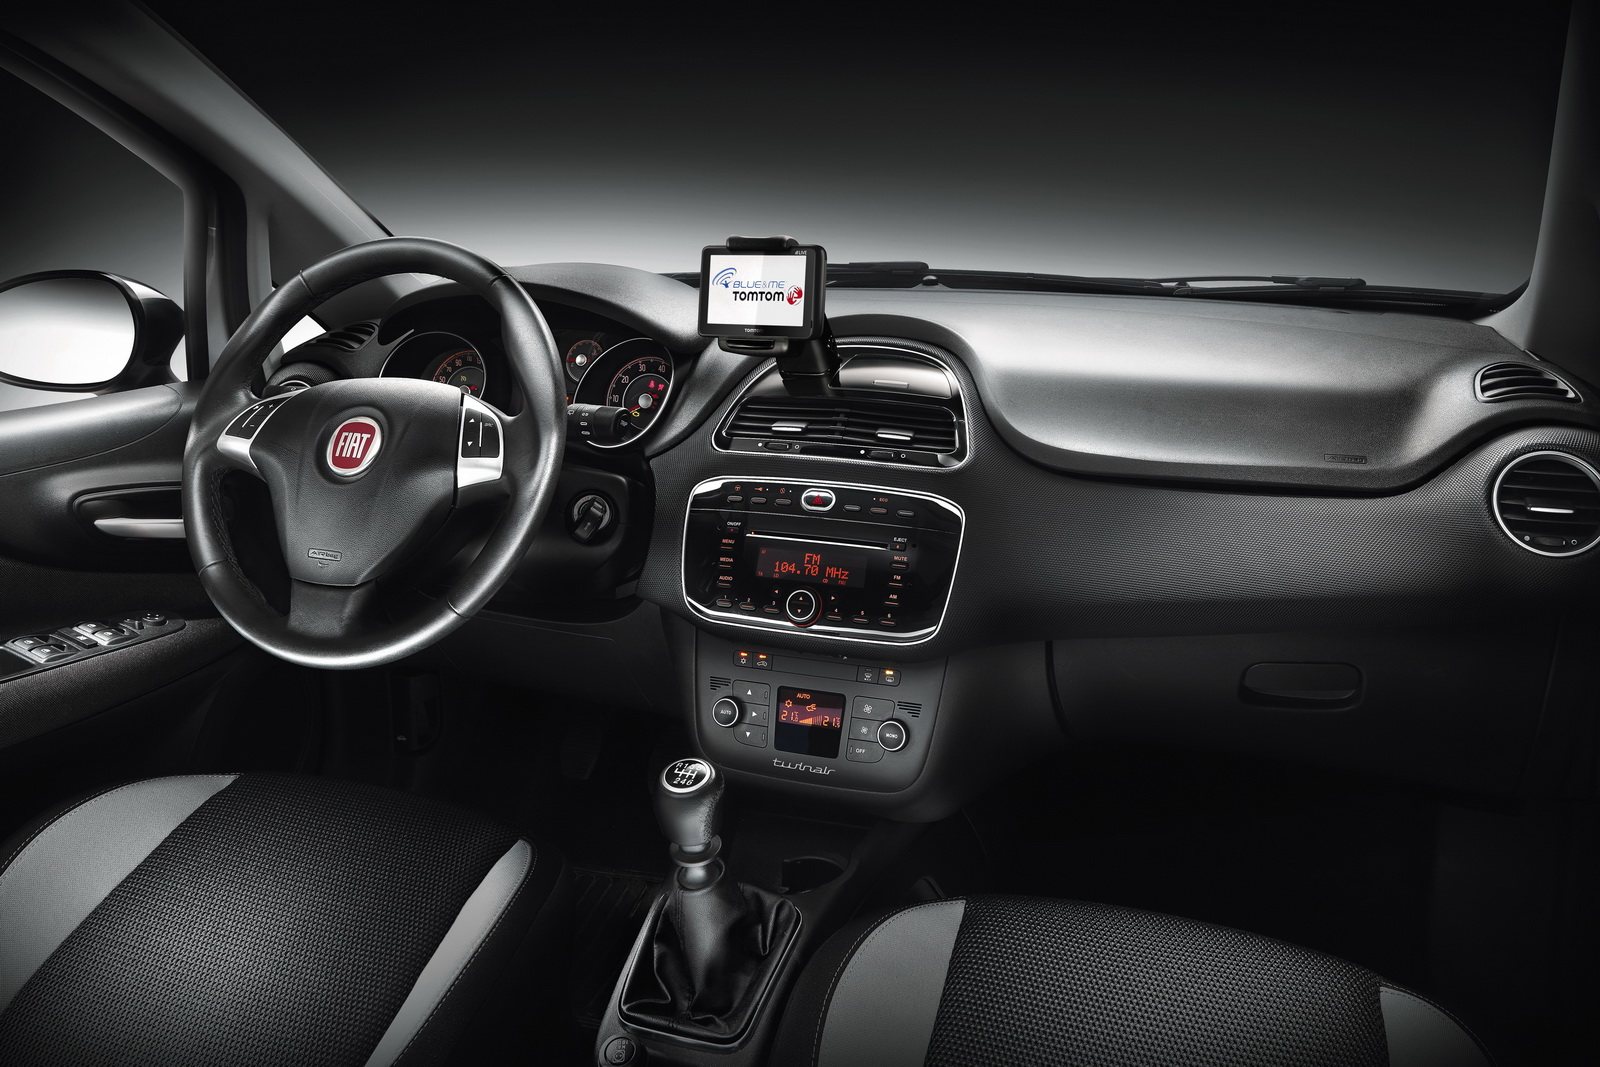 2012 FIAT PUNTO 2012 Nuova Panda – More Fuel Economic with Updated Drive Train Package